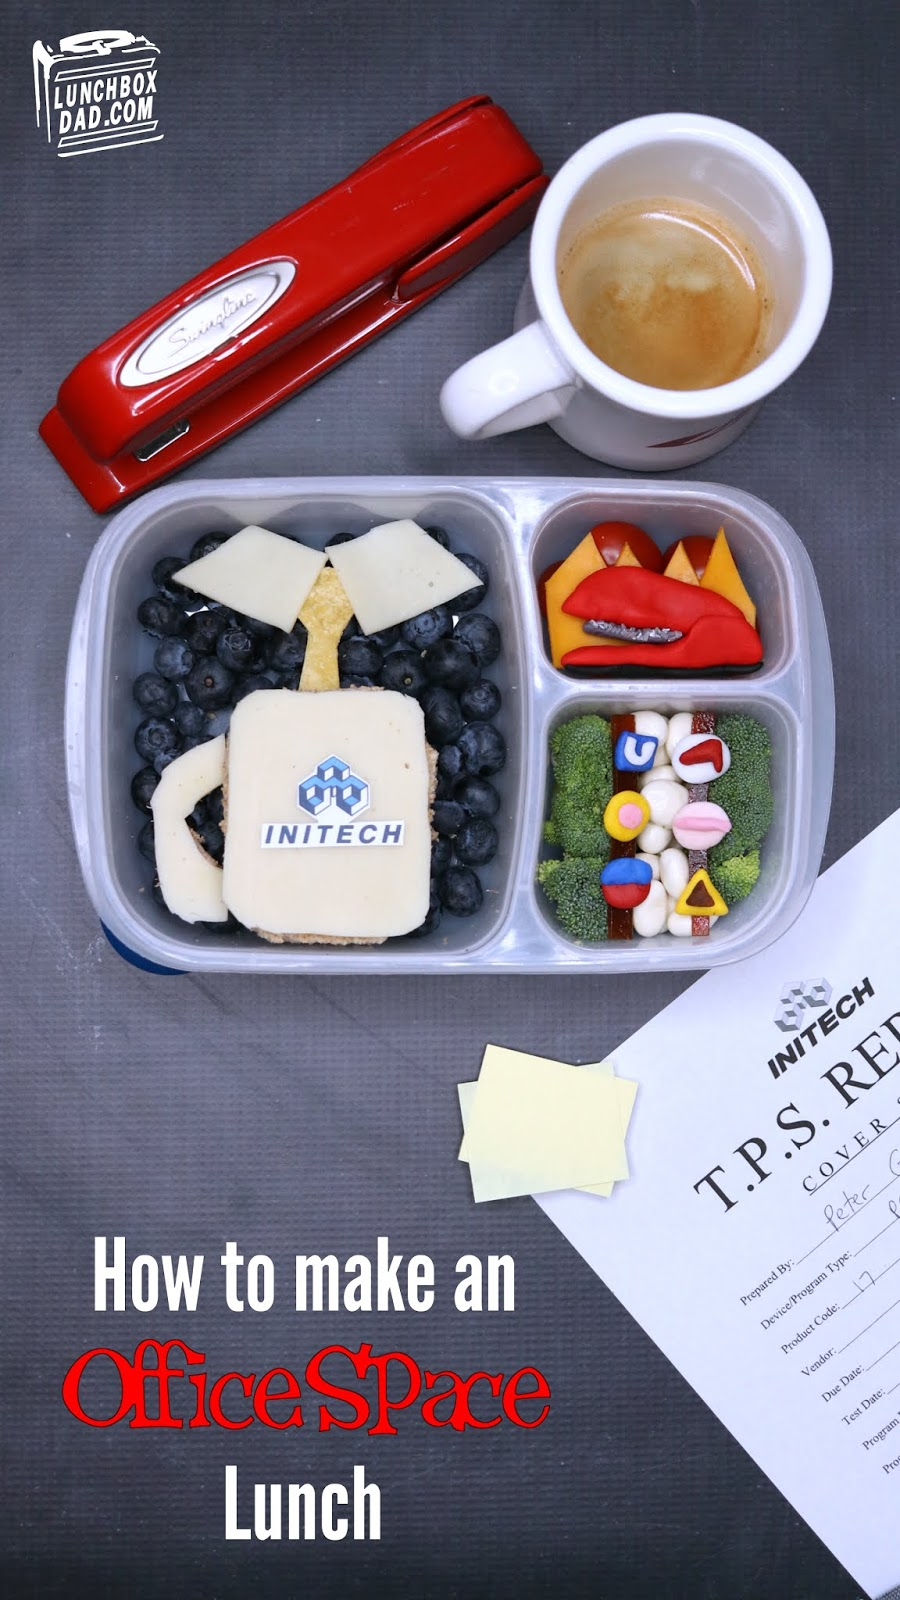 Lunchbox Dad: Office Space Lunch